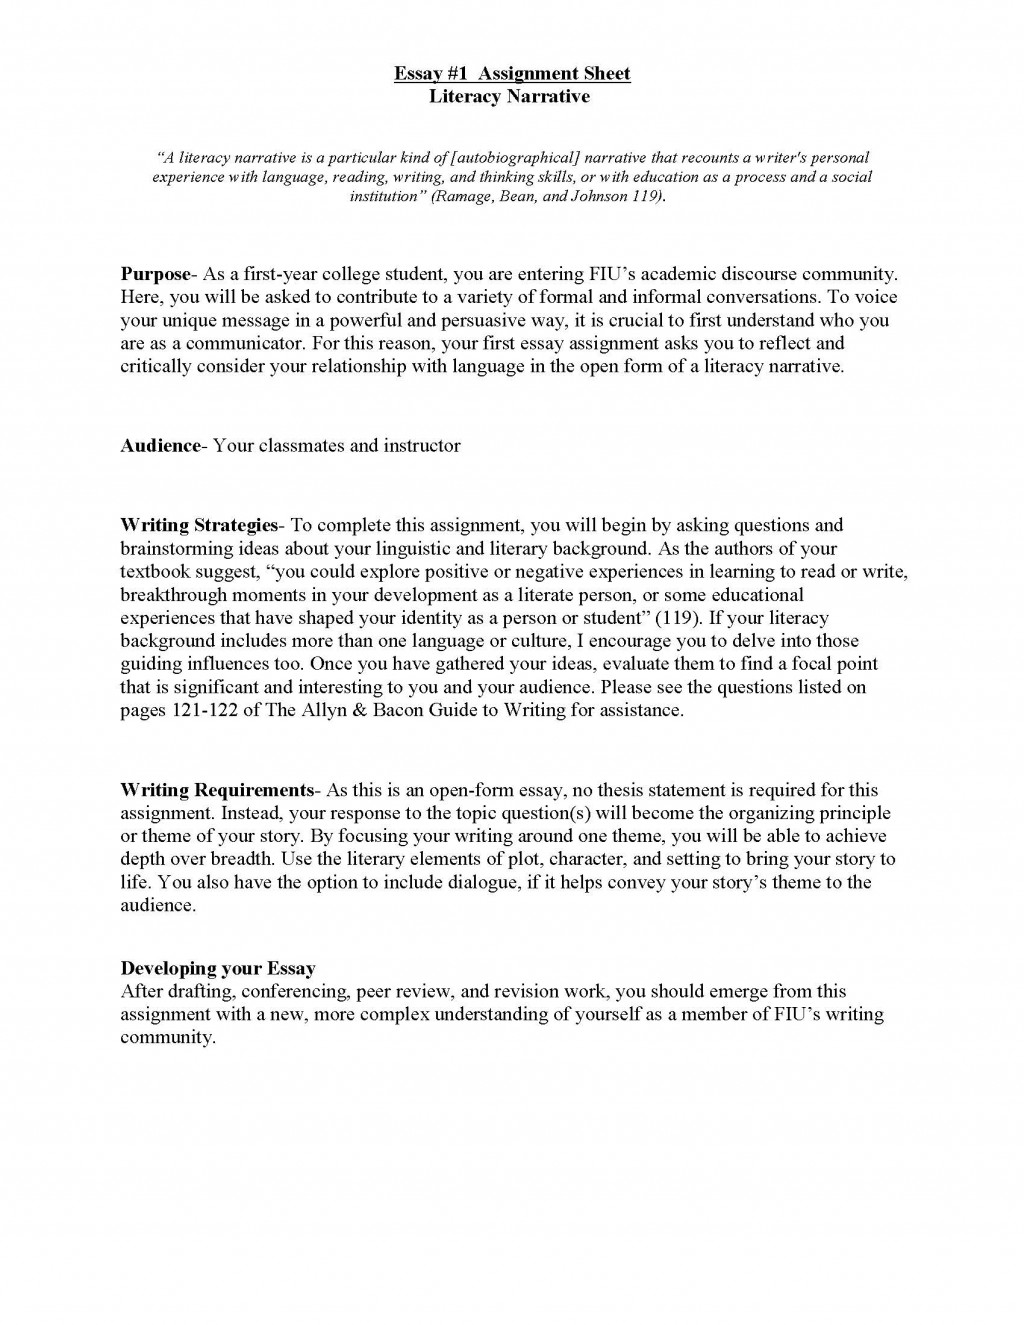 019 Narrative Essays High School Literacy Unit Assignment Spring 2012 Page 1 Unique Essay Examples Personal Pdf Large